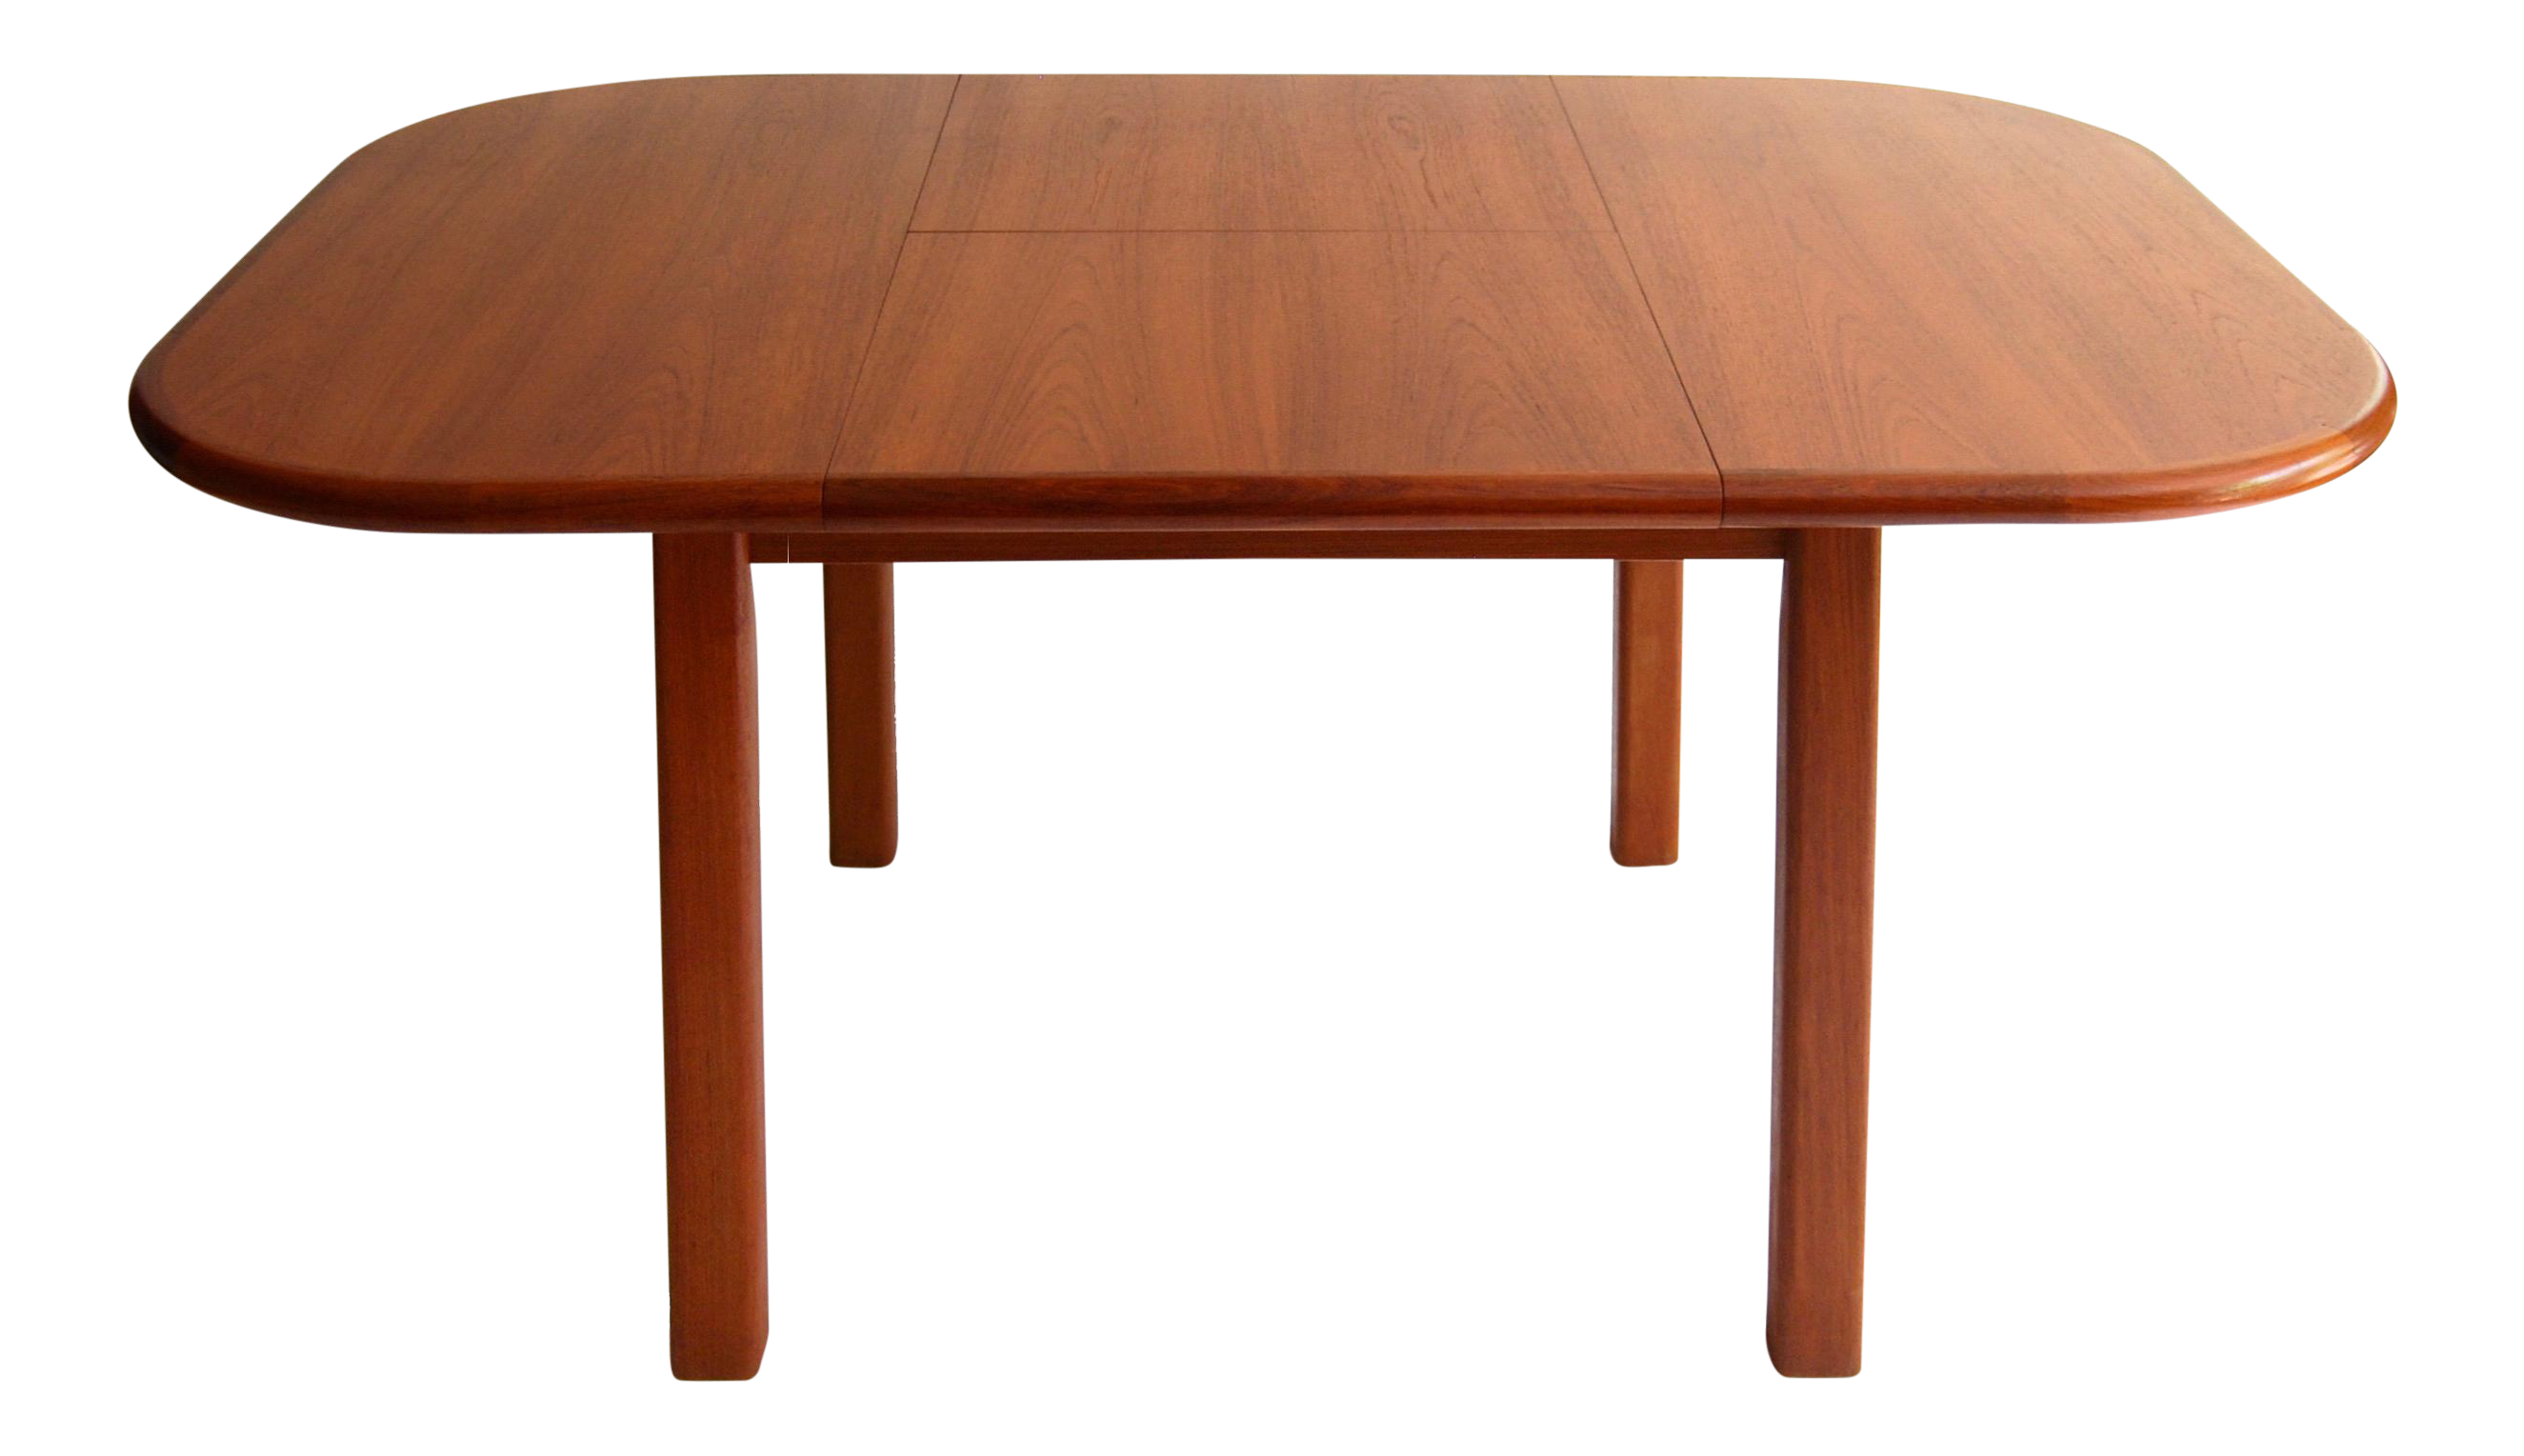 Vintage Mid Century Modern Teak Extending Dining Table By D Scan Chairish